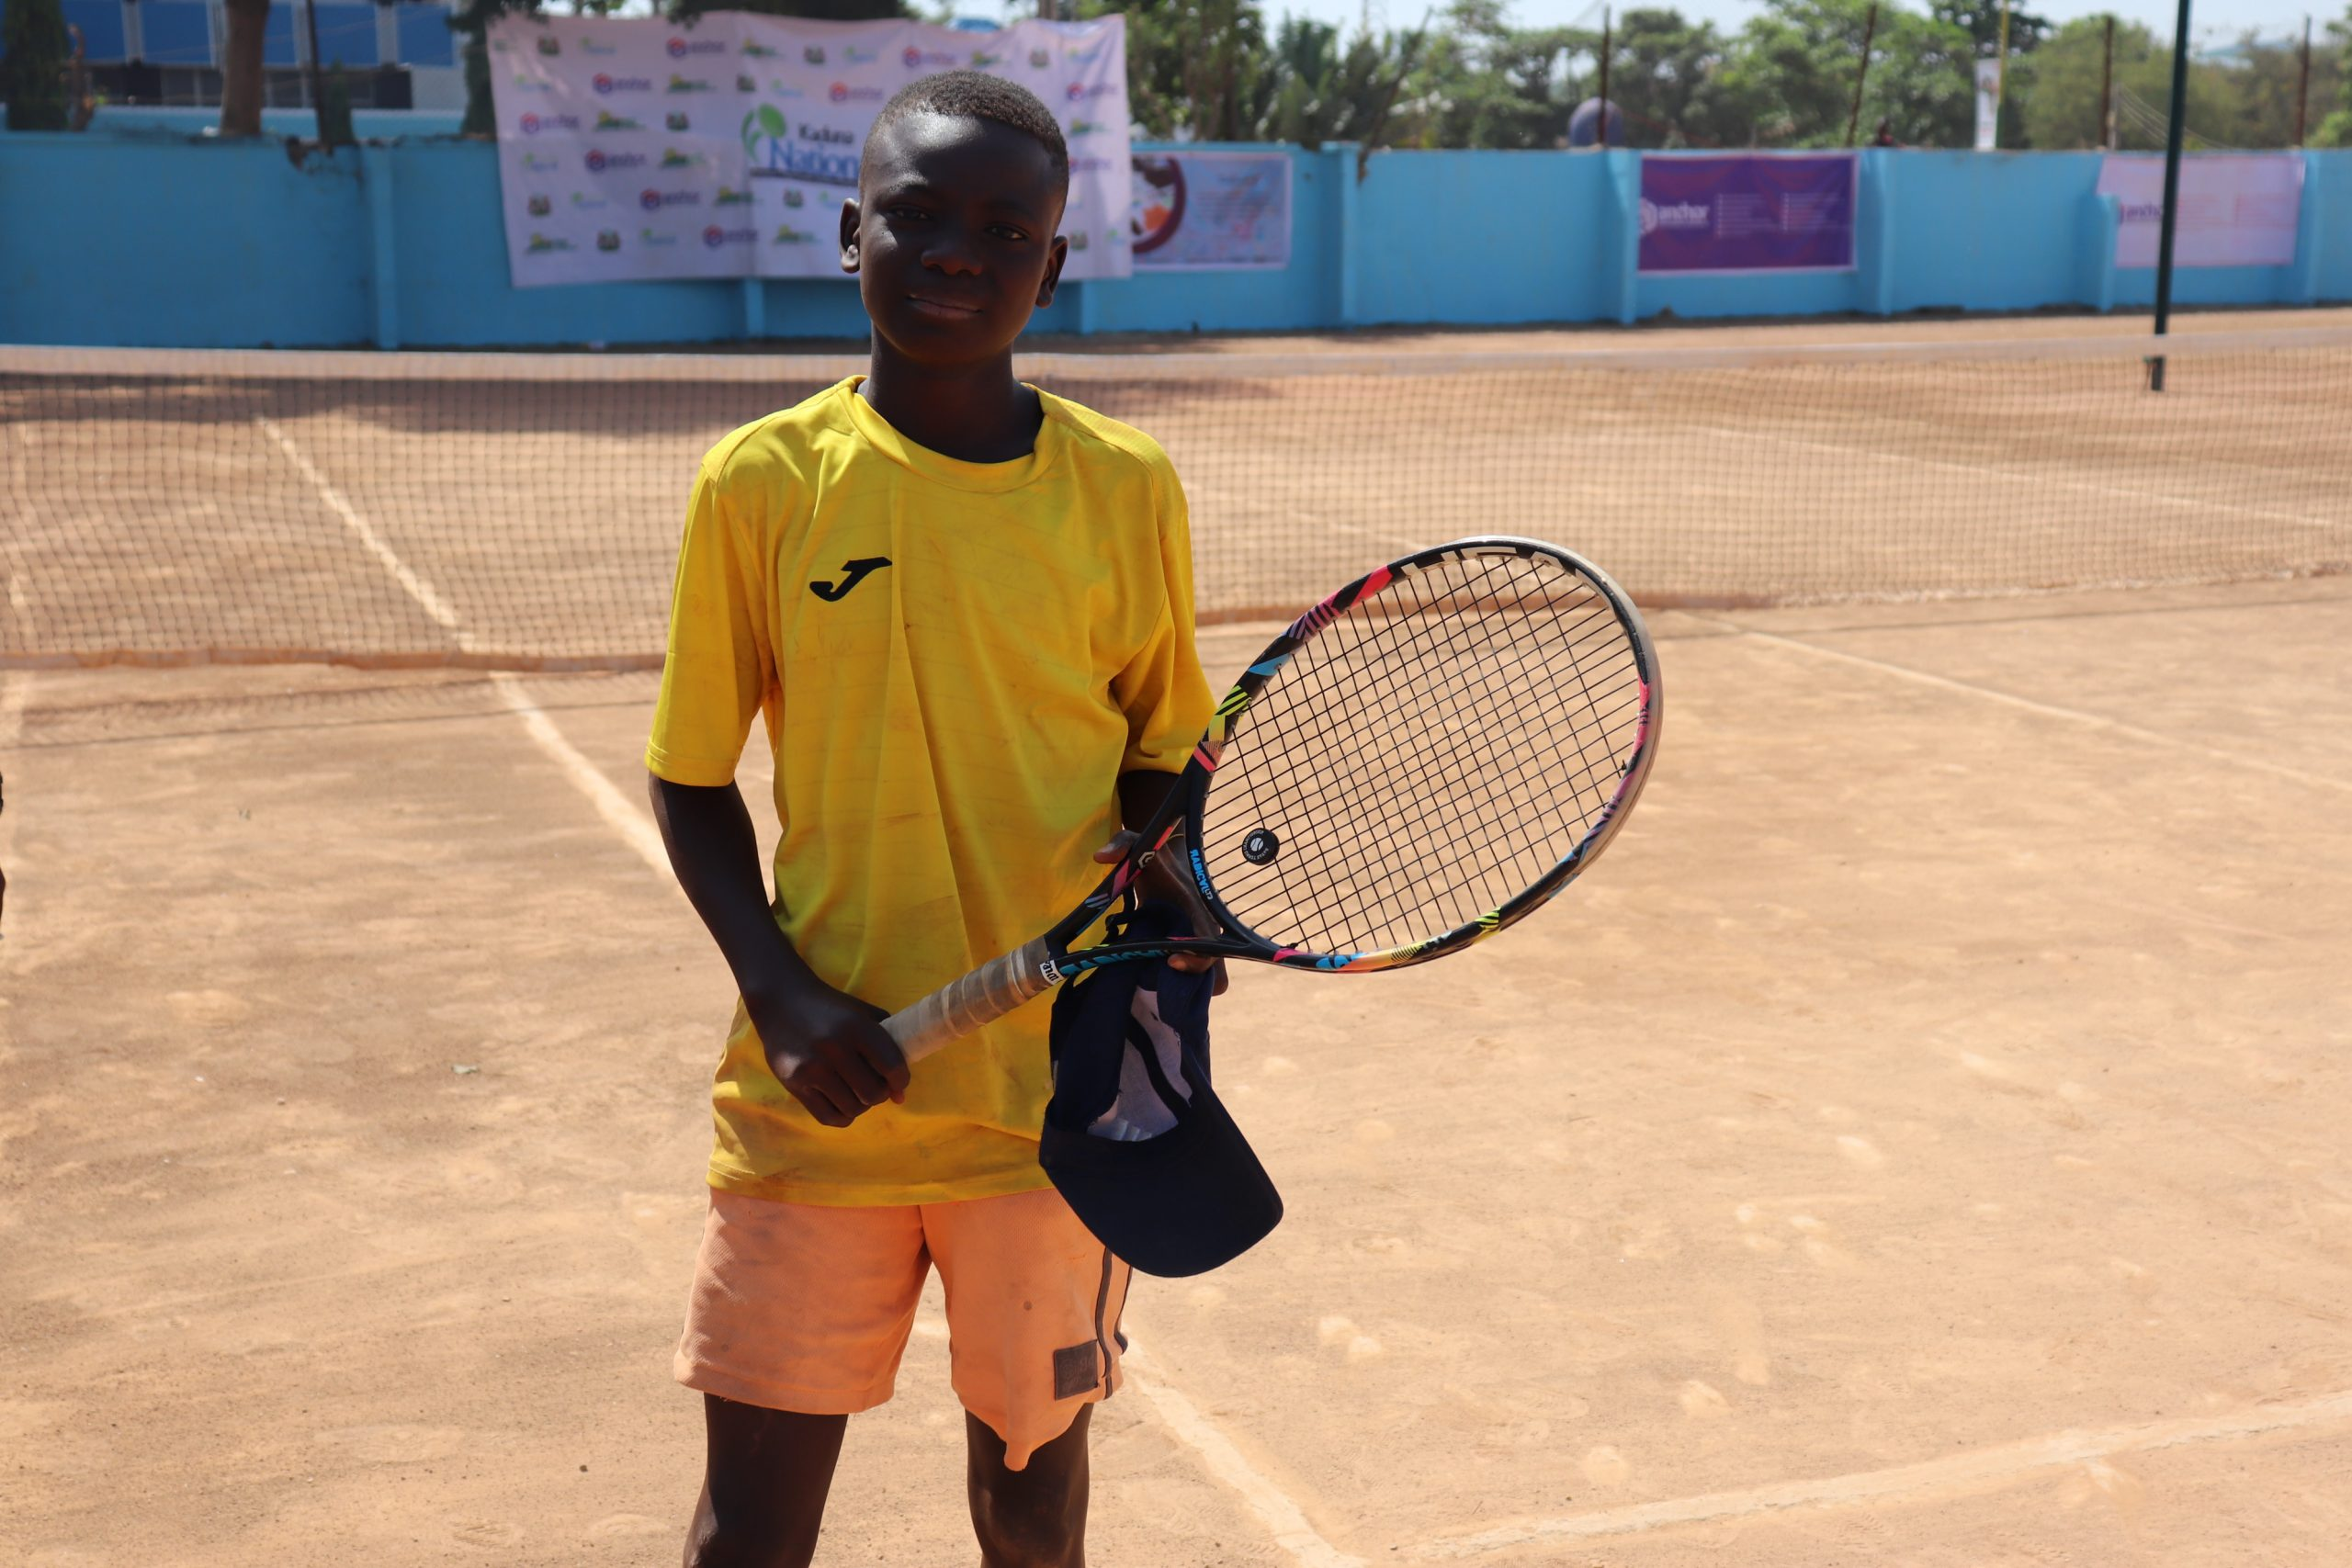 Kaduna Clay Court: FCT players dominate Day 2 as tournament enters Quarterfinal stage